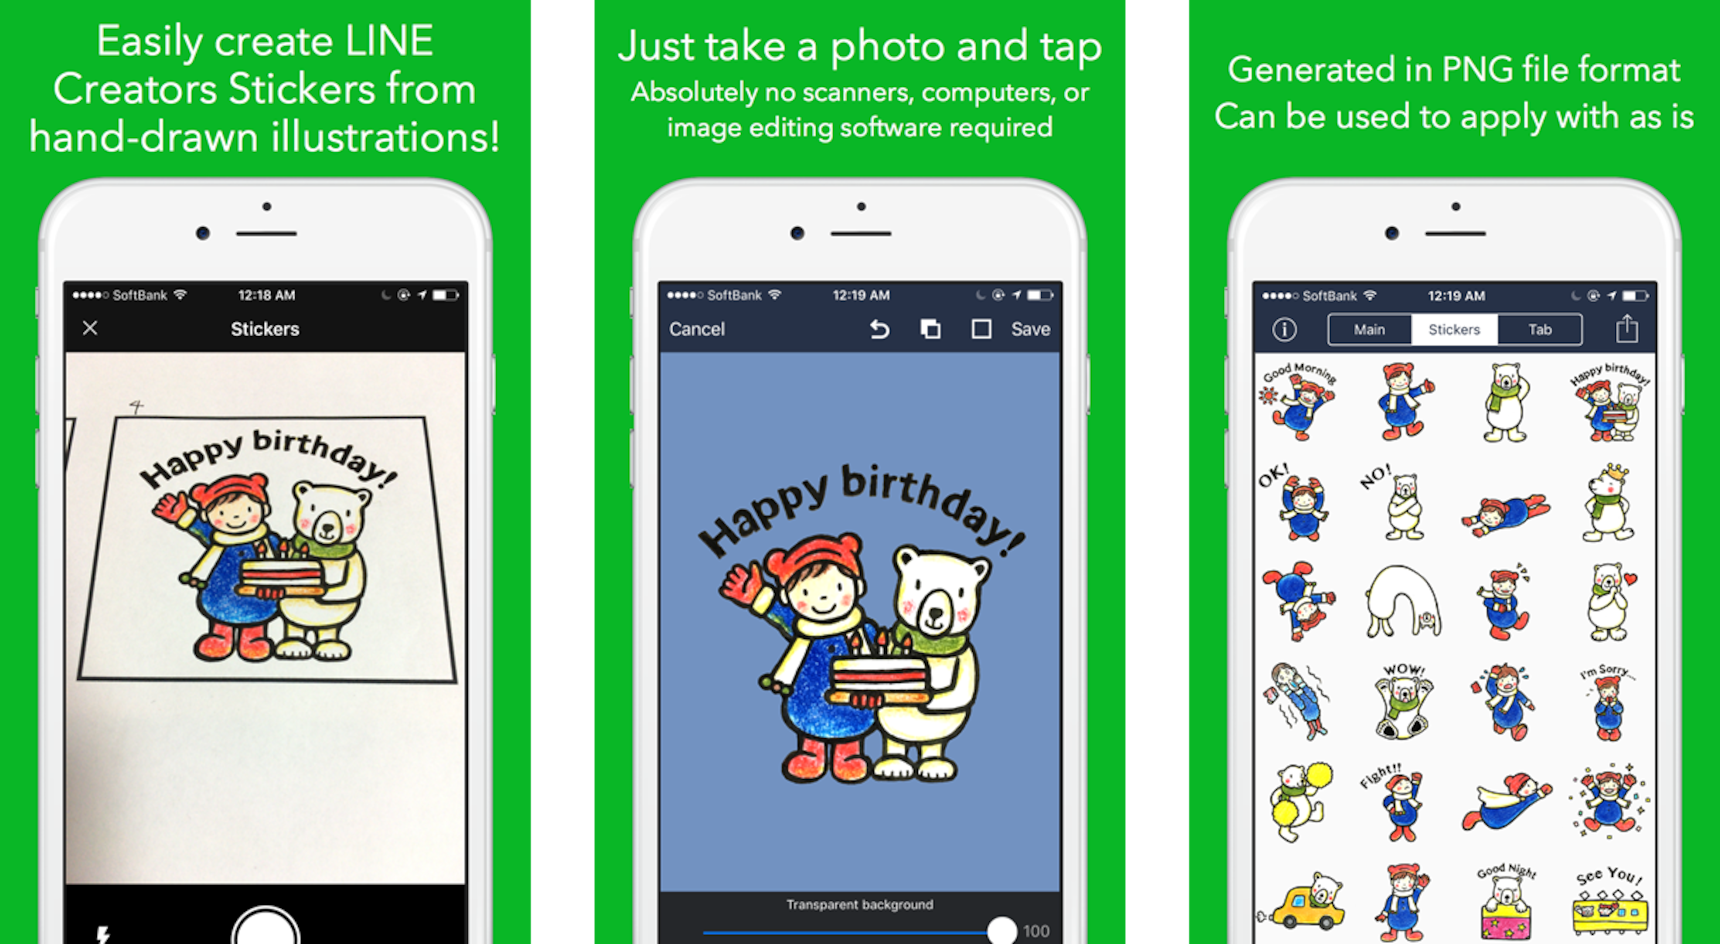 Line Stickers from Hand-Drawn Illustrations